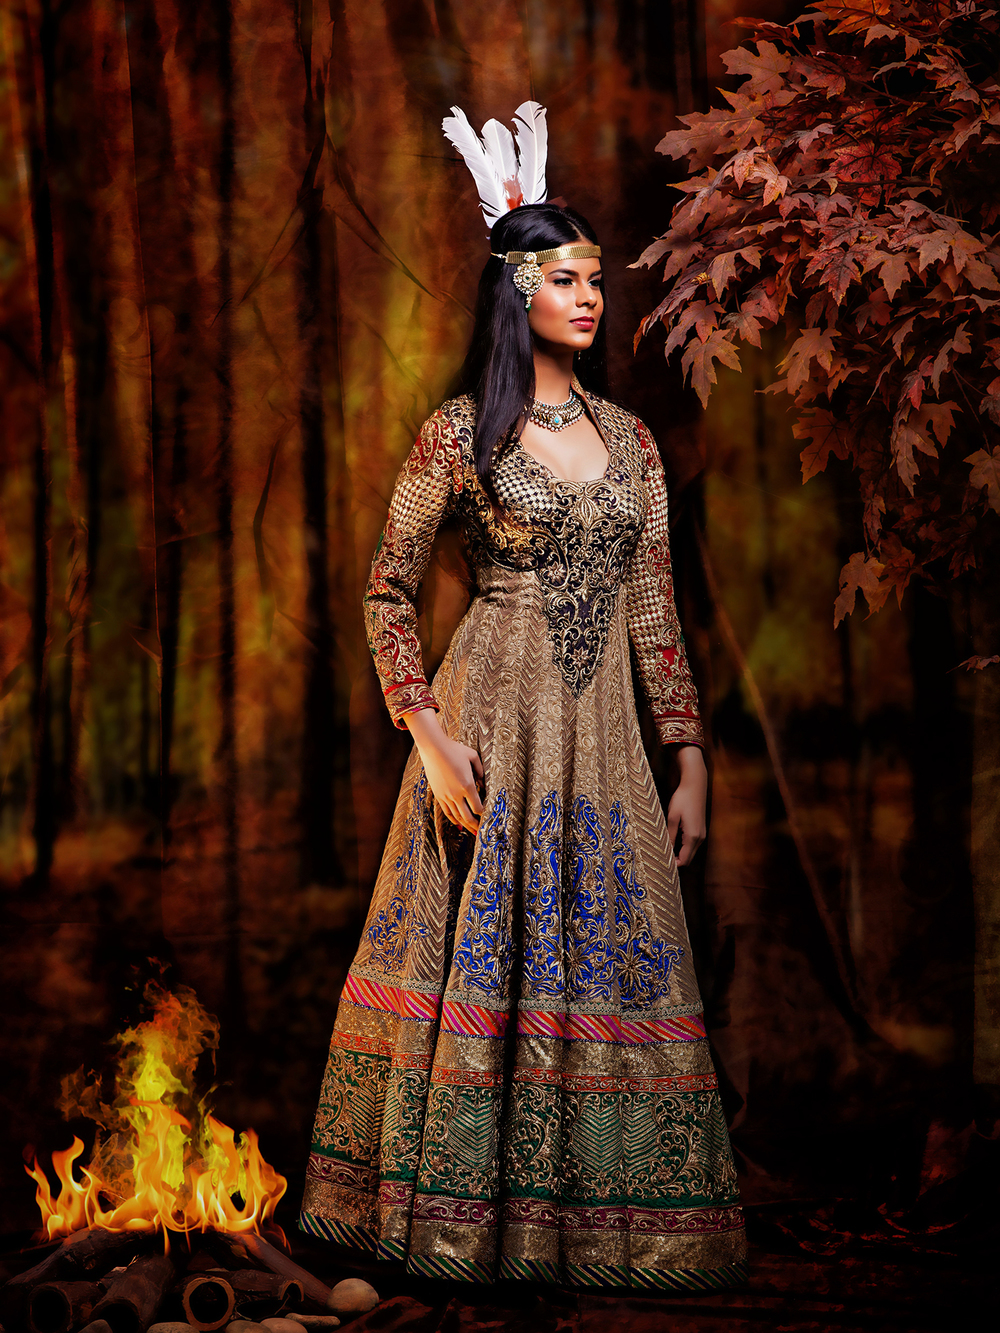 Pocahontas - Indian Disney Princess